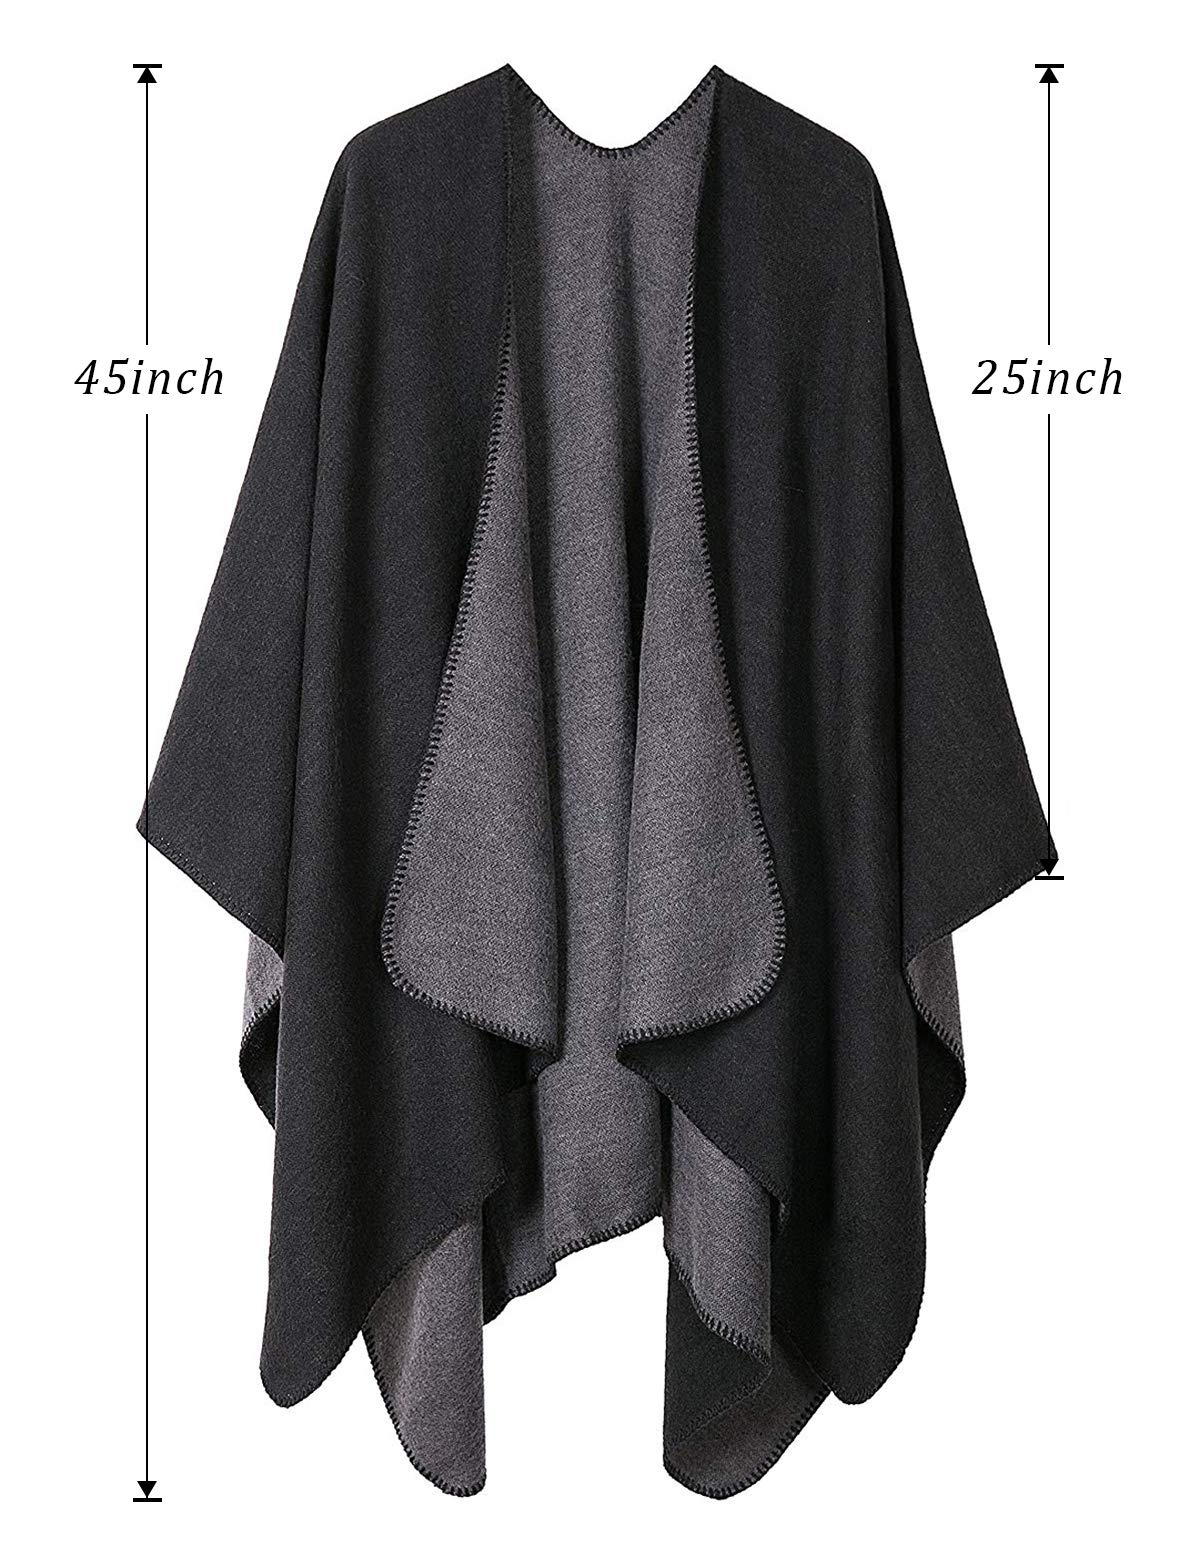 Women Plaid Shawls and Wraps,Winter Poncho Cape,Soft Cashmere Cloak,Oversized Long Cardigan Sweaters(Black) by KirGiabo (Image #5)